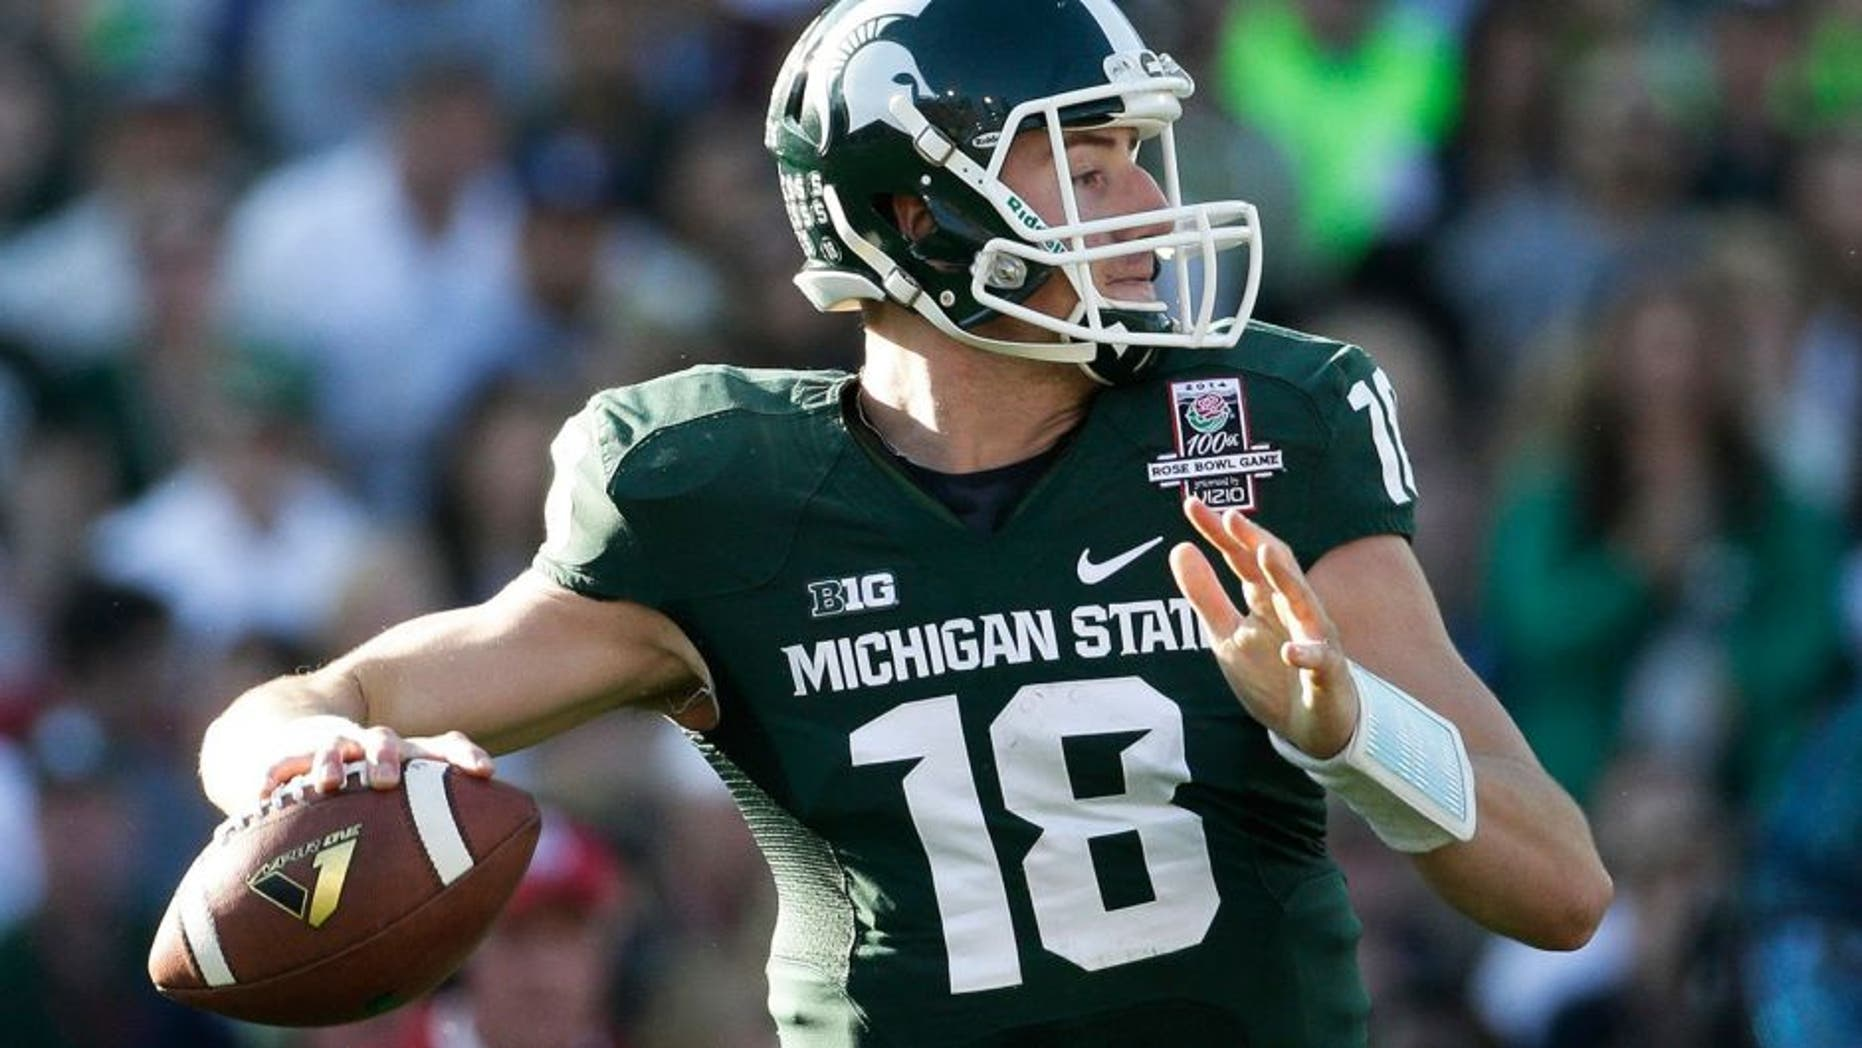 Michigan State quarterback Connor Cook goes back to pass during the first half of the Rose Bowl NCAA college football game against Stanford on Wednesday, Jan. 1, 2014, in Pasadena, Calif. (AP Photo/Jae C. Hong)